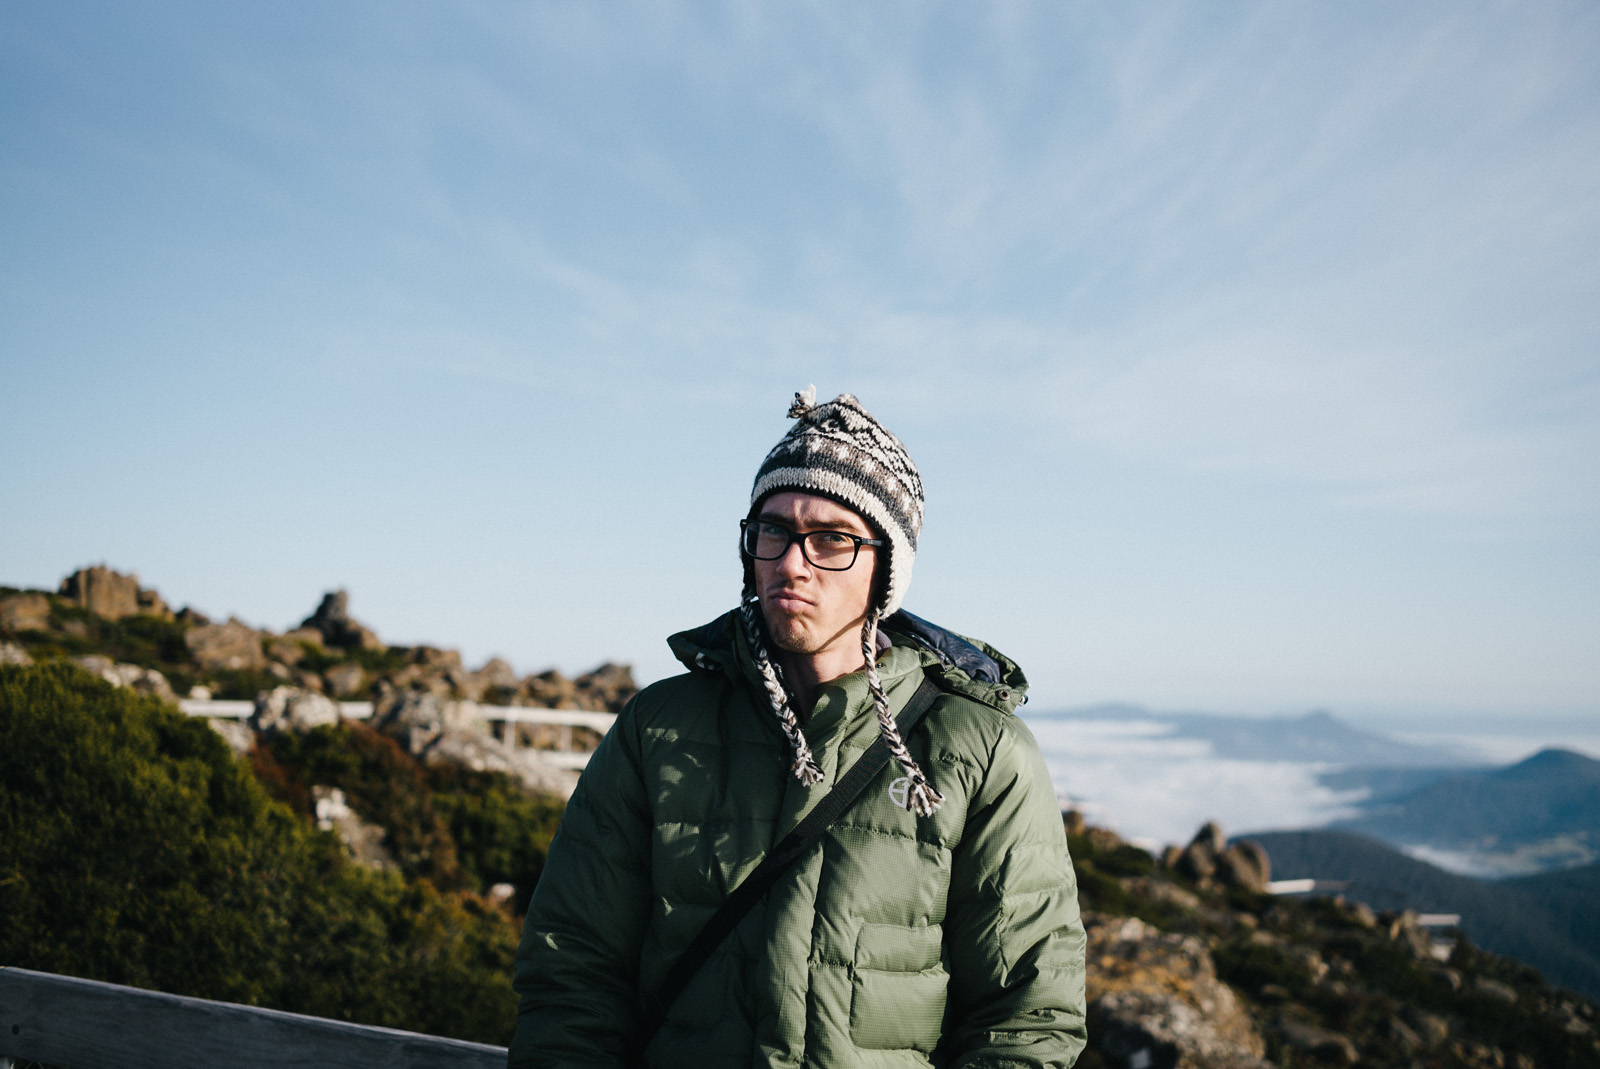 20150913_TasmaniaRoadtrip_083111-Nick-Bedford,-Photographer-Alpine, Australia, kunanyi, Leica M Typ 240, Mount Wellington, Road Trip, Summarit 35mm, Tasmania, Travel, VSCO Film.jpg